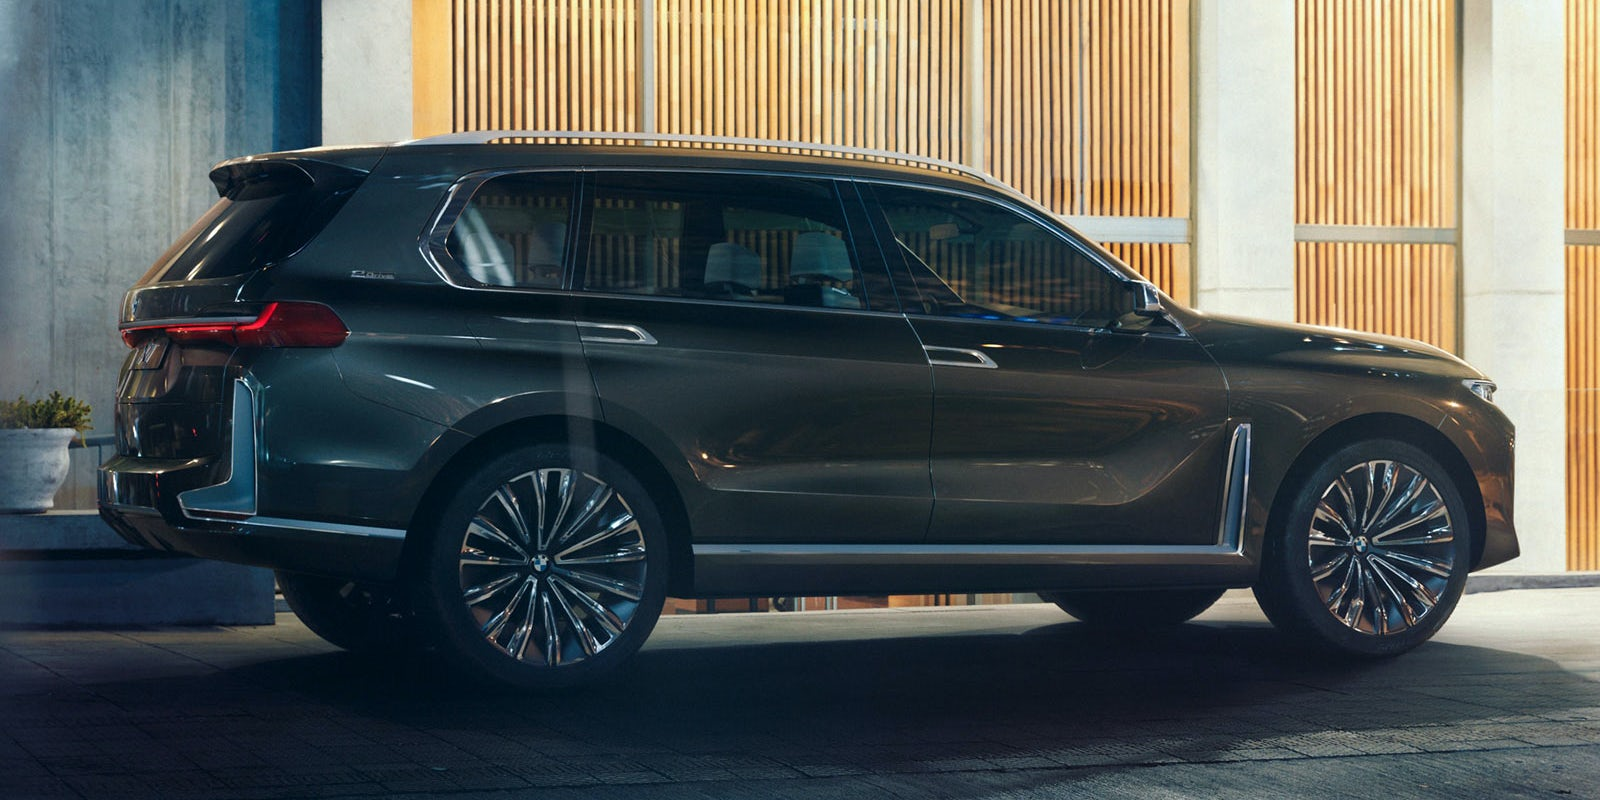 BMW X7 Side View